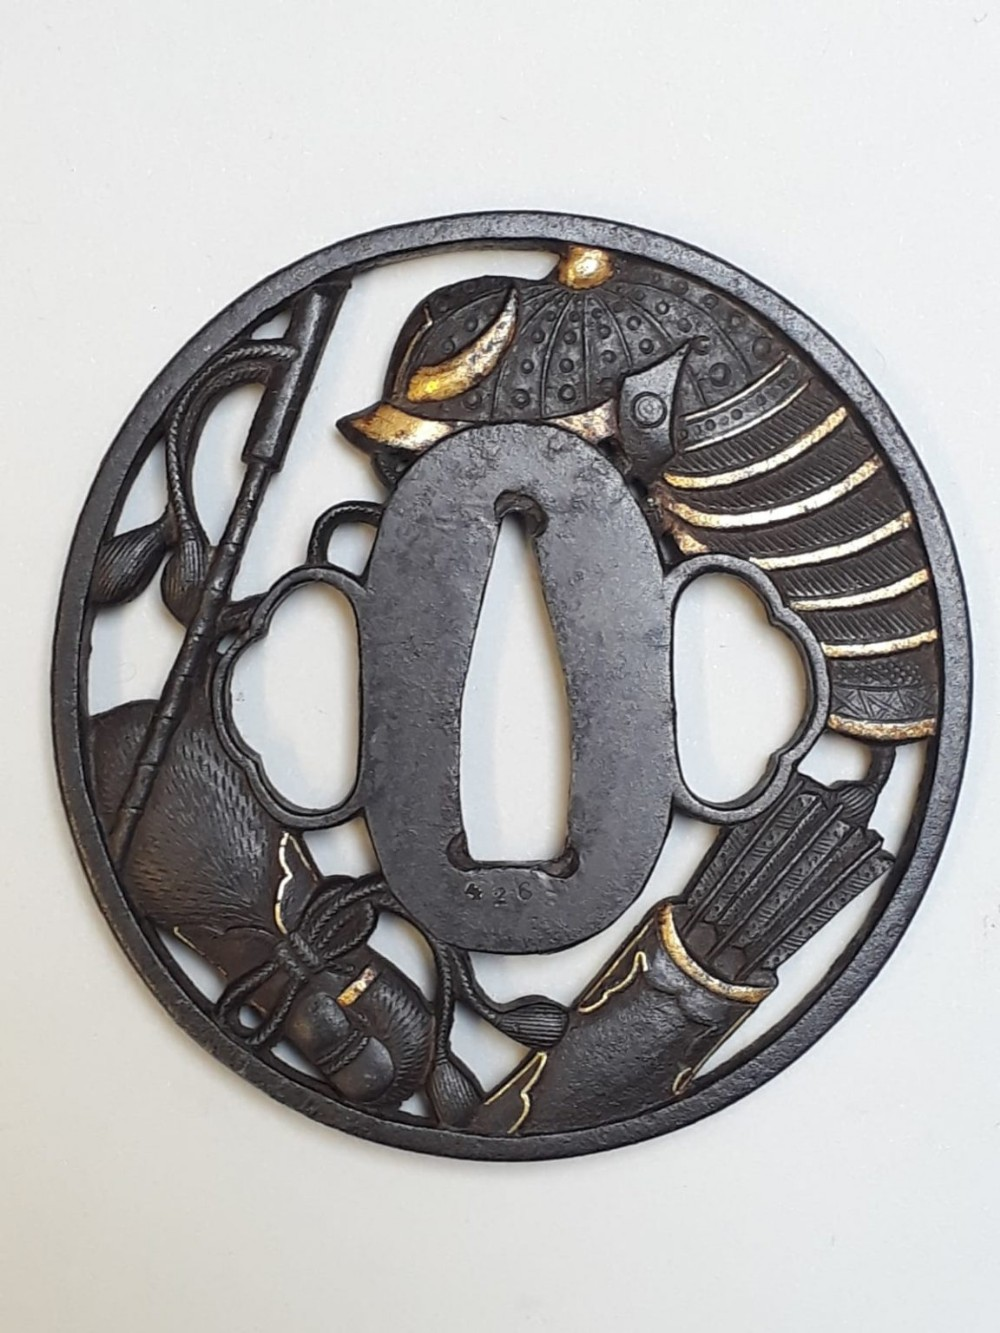 japanese meiji period iron tsuba with cut out design of samurai objects